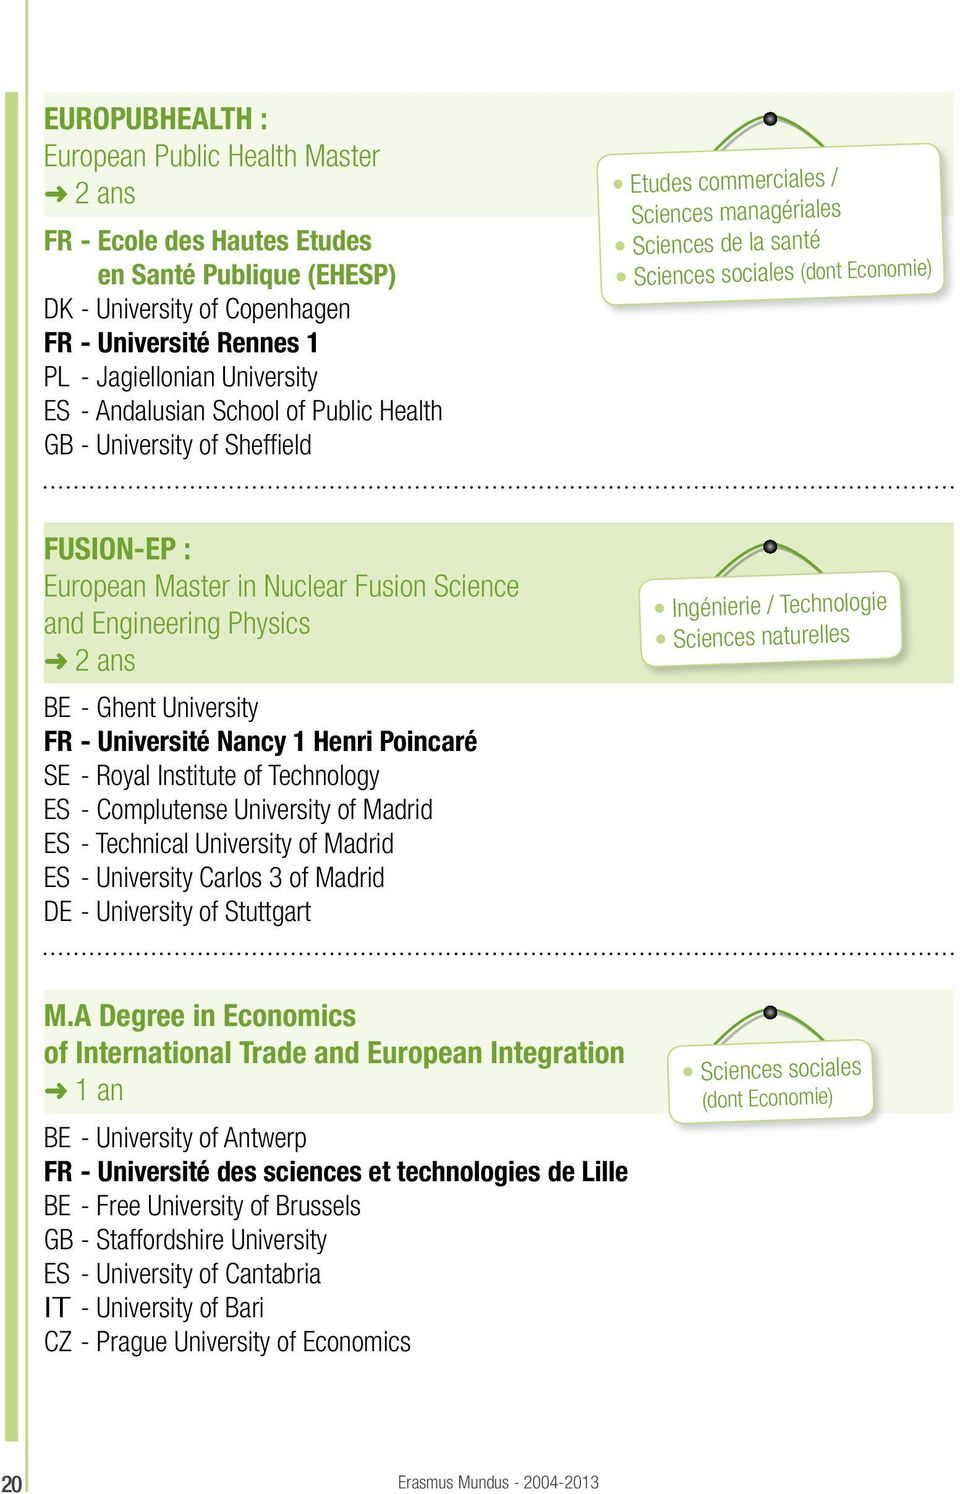 Nuclear Fusion Science and Engineering Physics BE - Ghent University FR - Université Nancy 1 Henri Poincaré SE - Royal Institute of Technology ES - Complutense University of Madrid ES - Technical